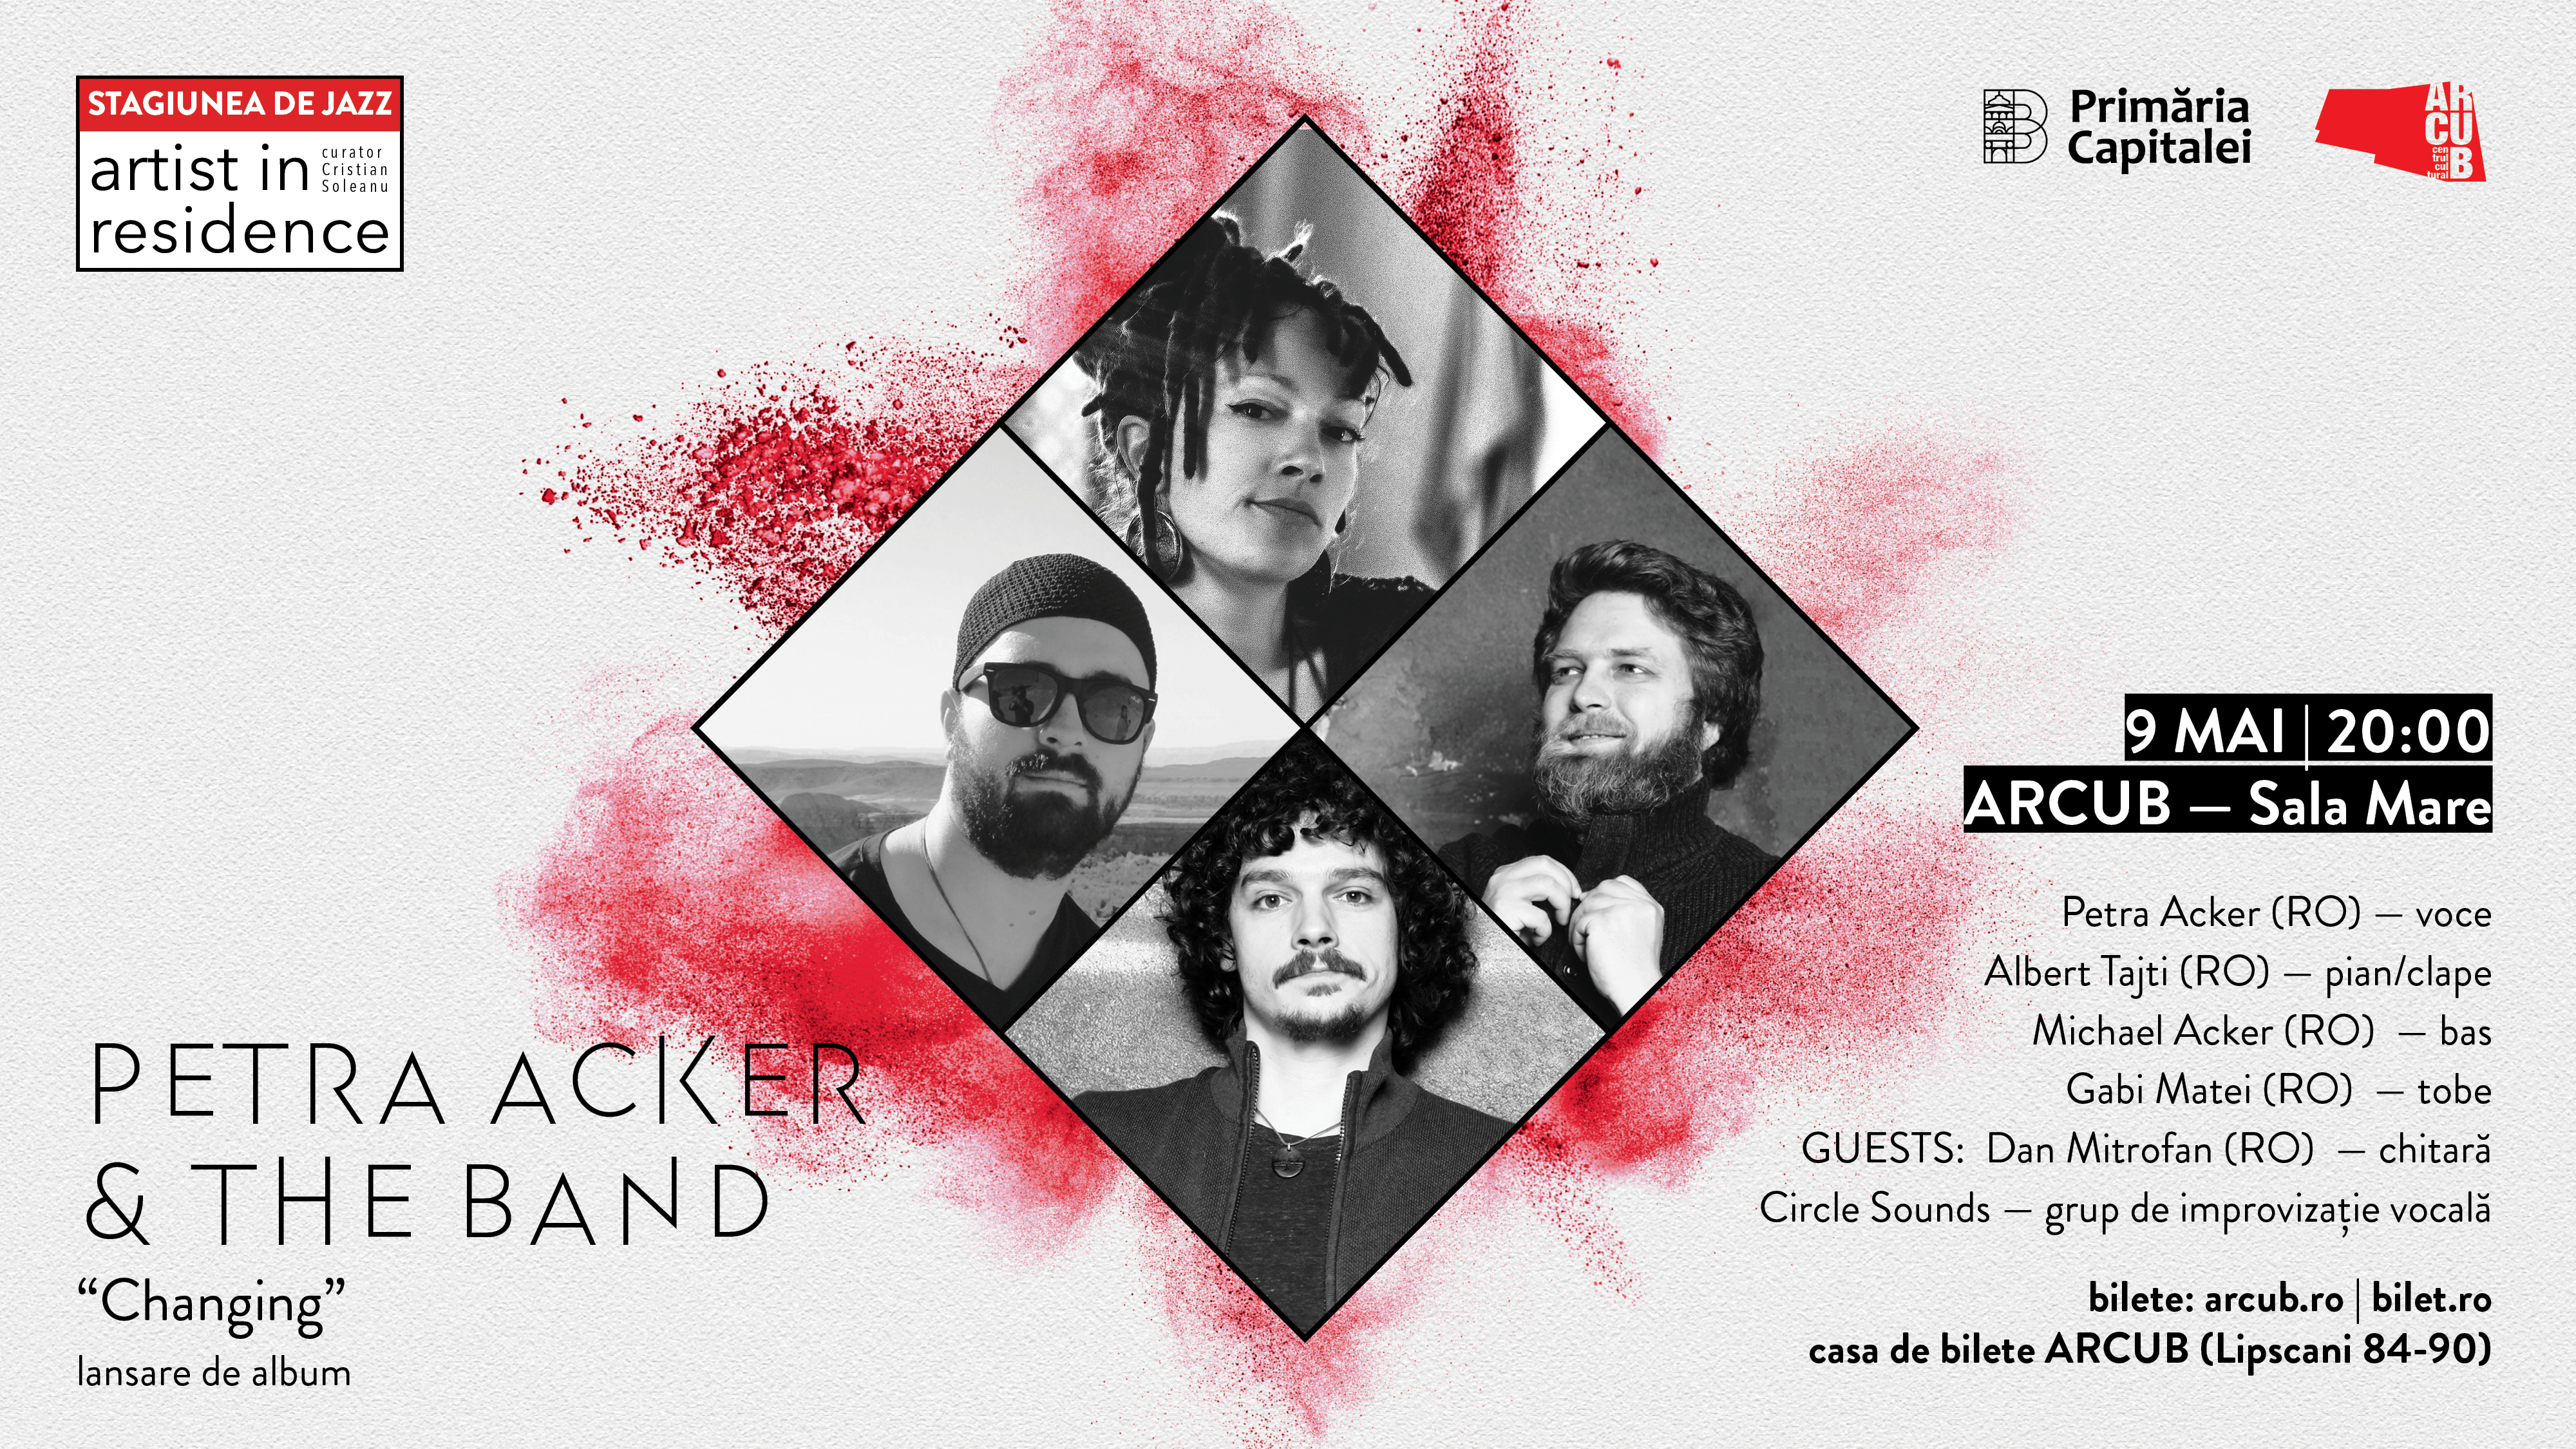 Artist in Residence   PETRA ACKER & THE BAND   Changing – lansare de album